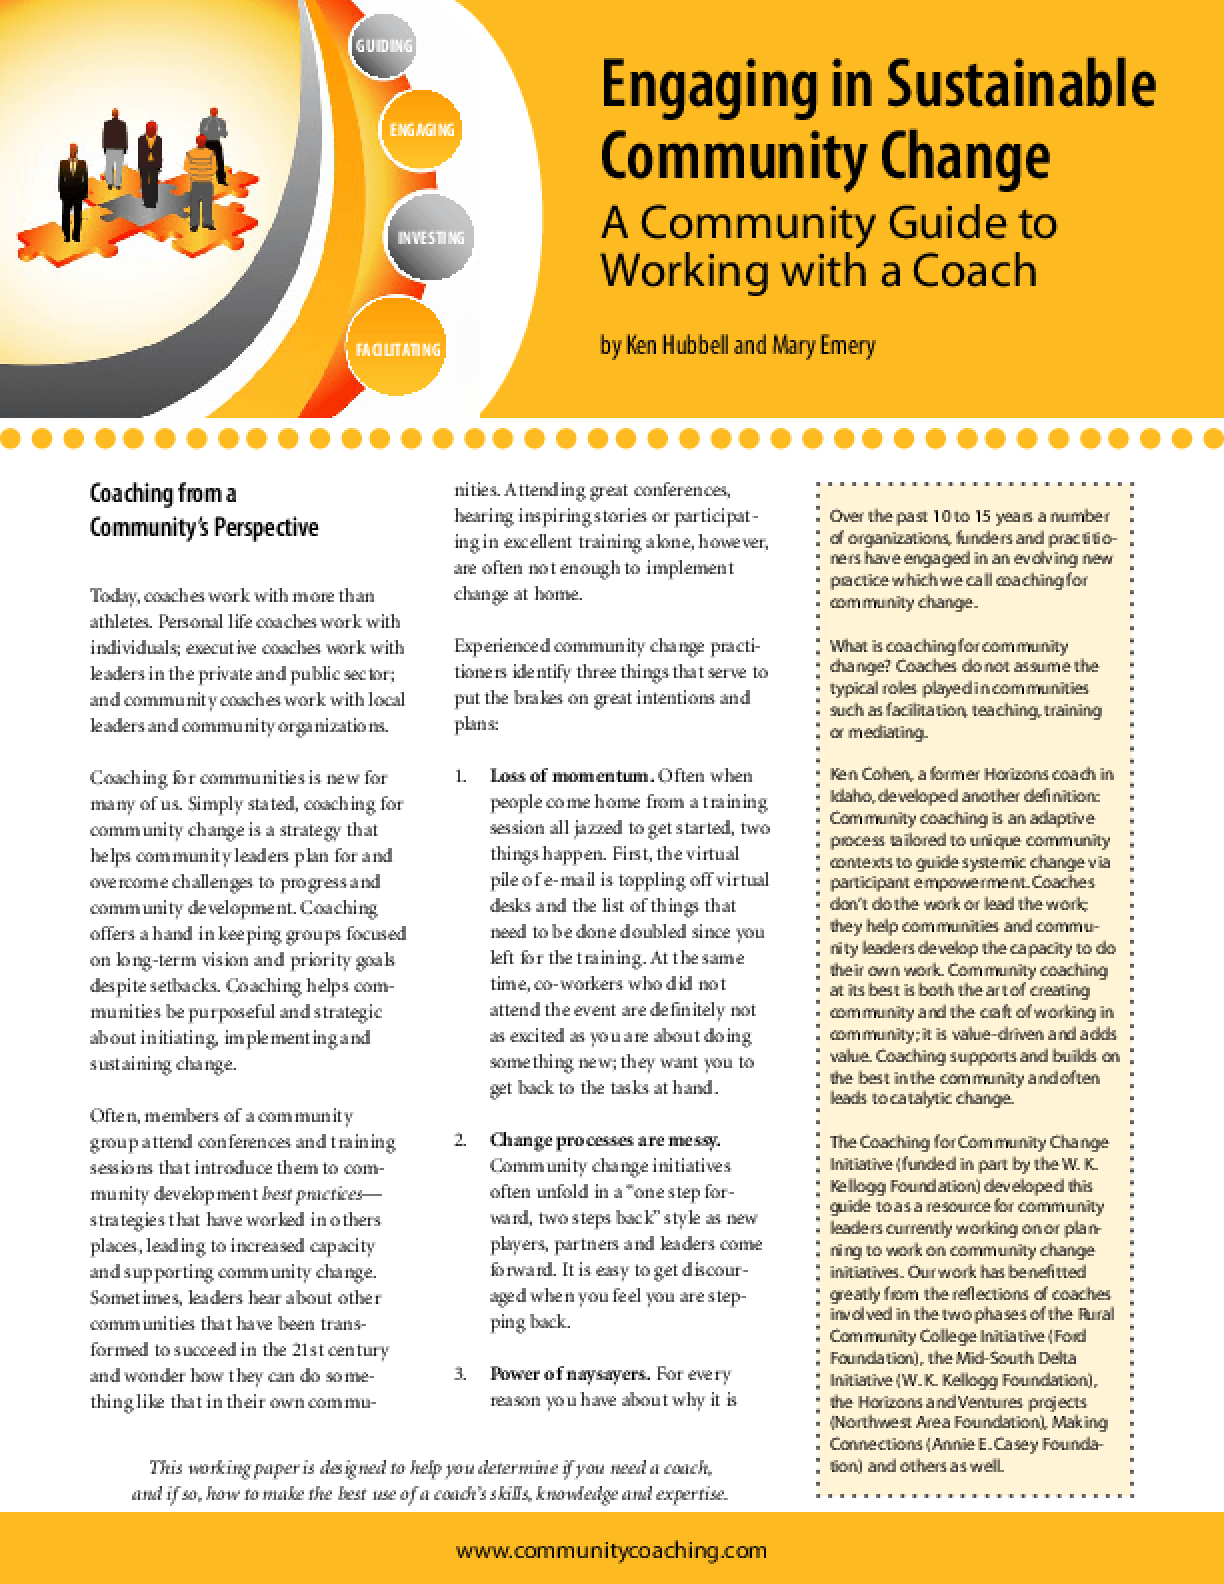 Engaging in Sustainable Community Change: A Community Guide to Working With a Coach